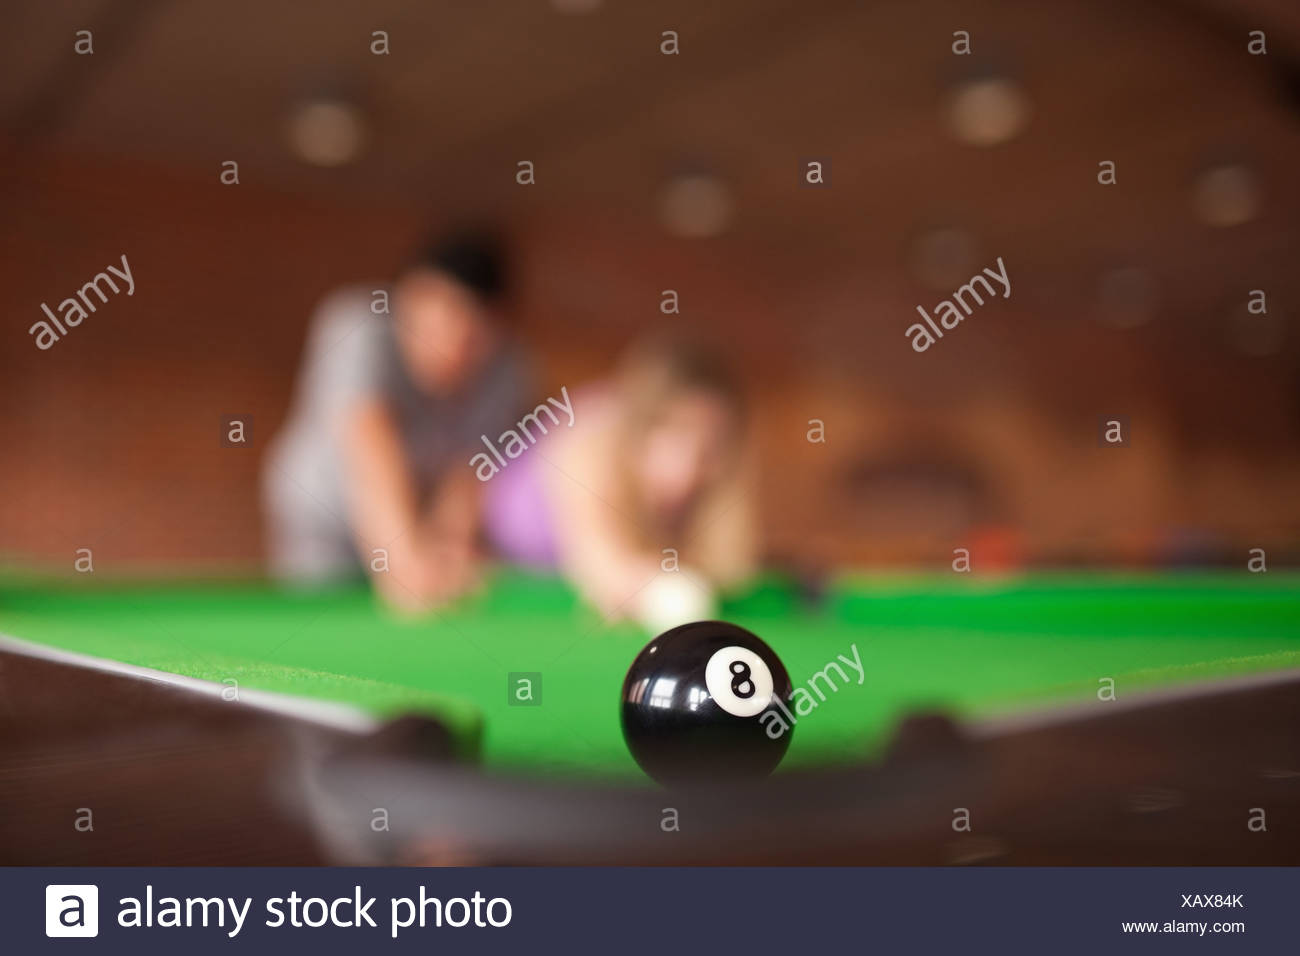 Man teaching pool to his fiance - Stock Image